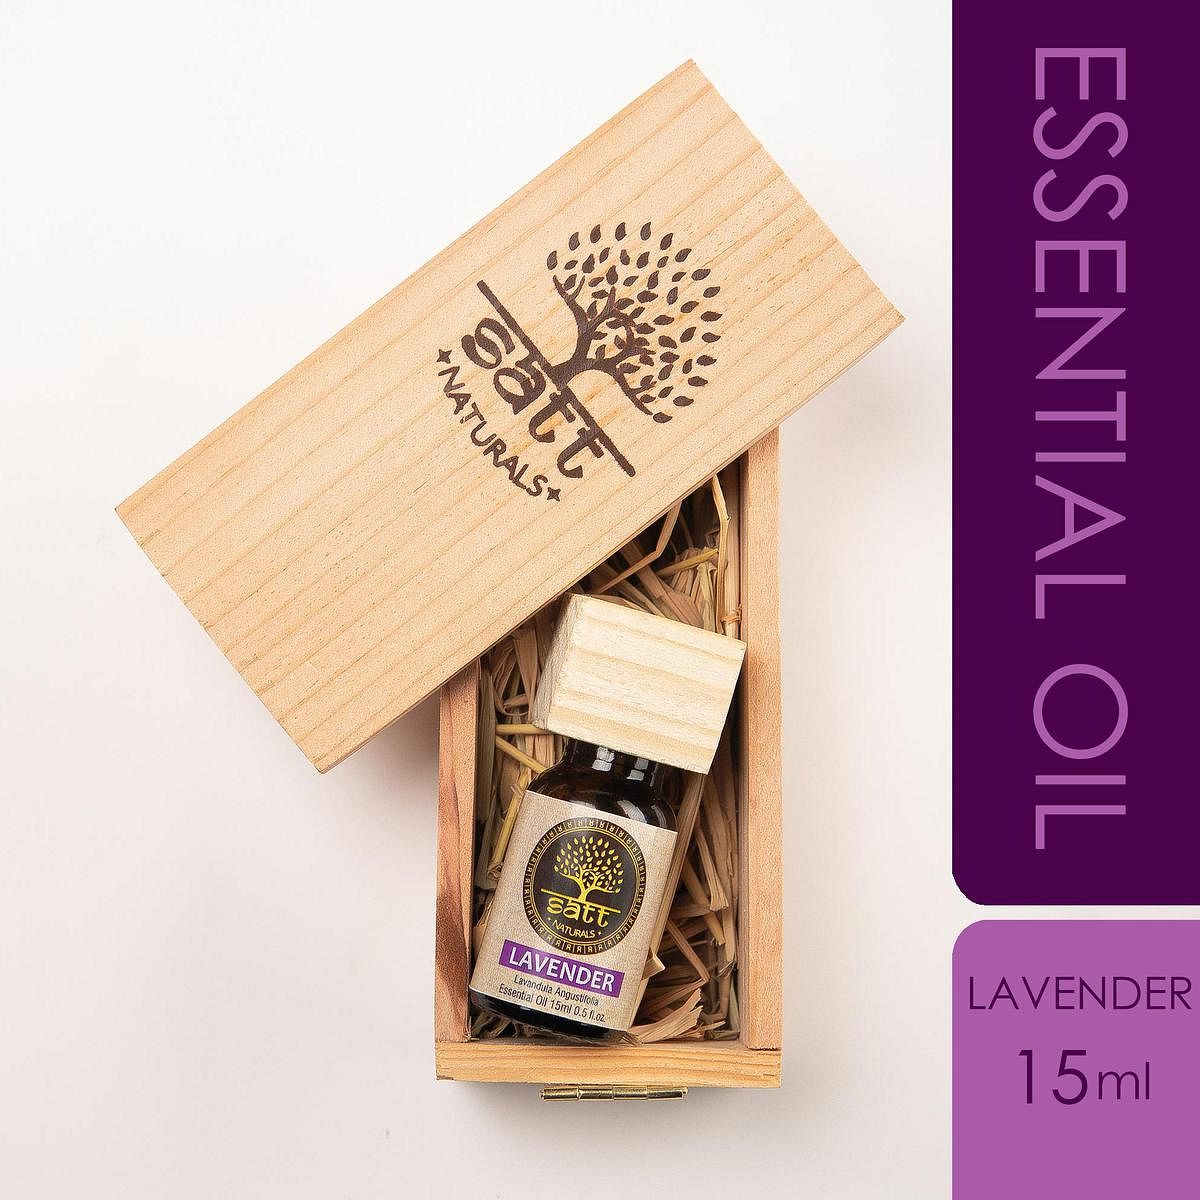 Satt Naturals Pure And Natural Lavender Essential Oil For Hair-Skin-Face And Relaxing 15ml